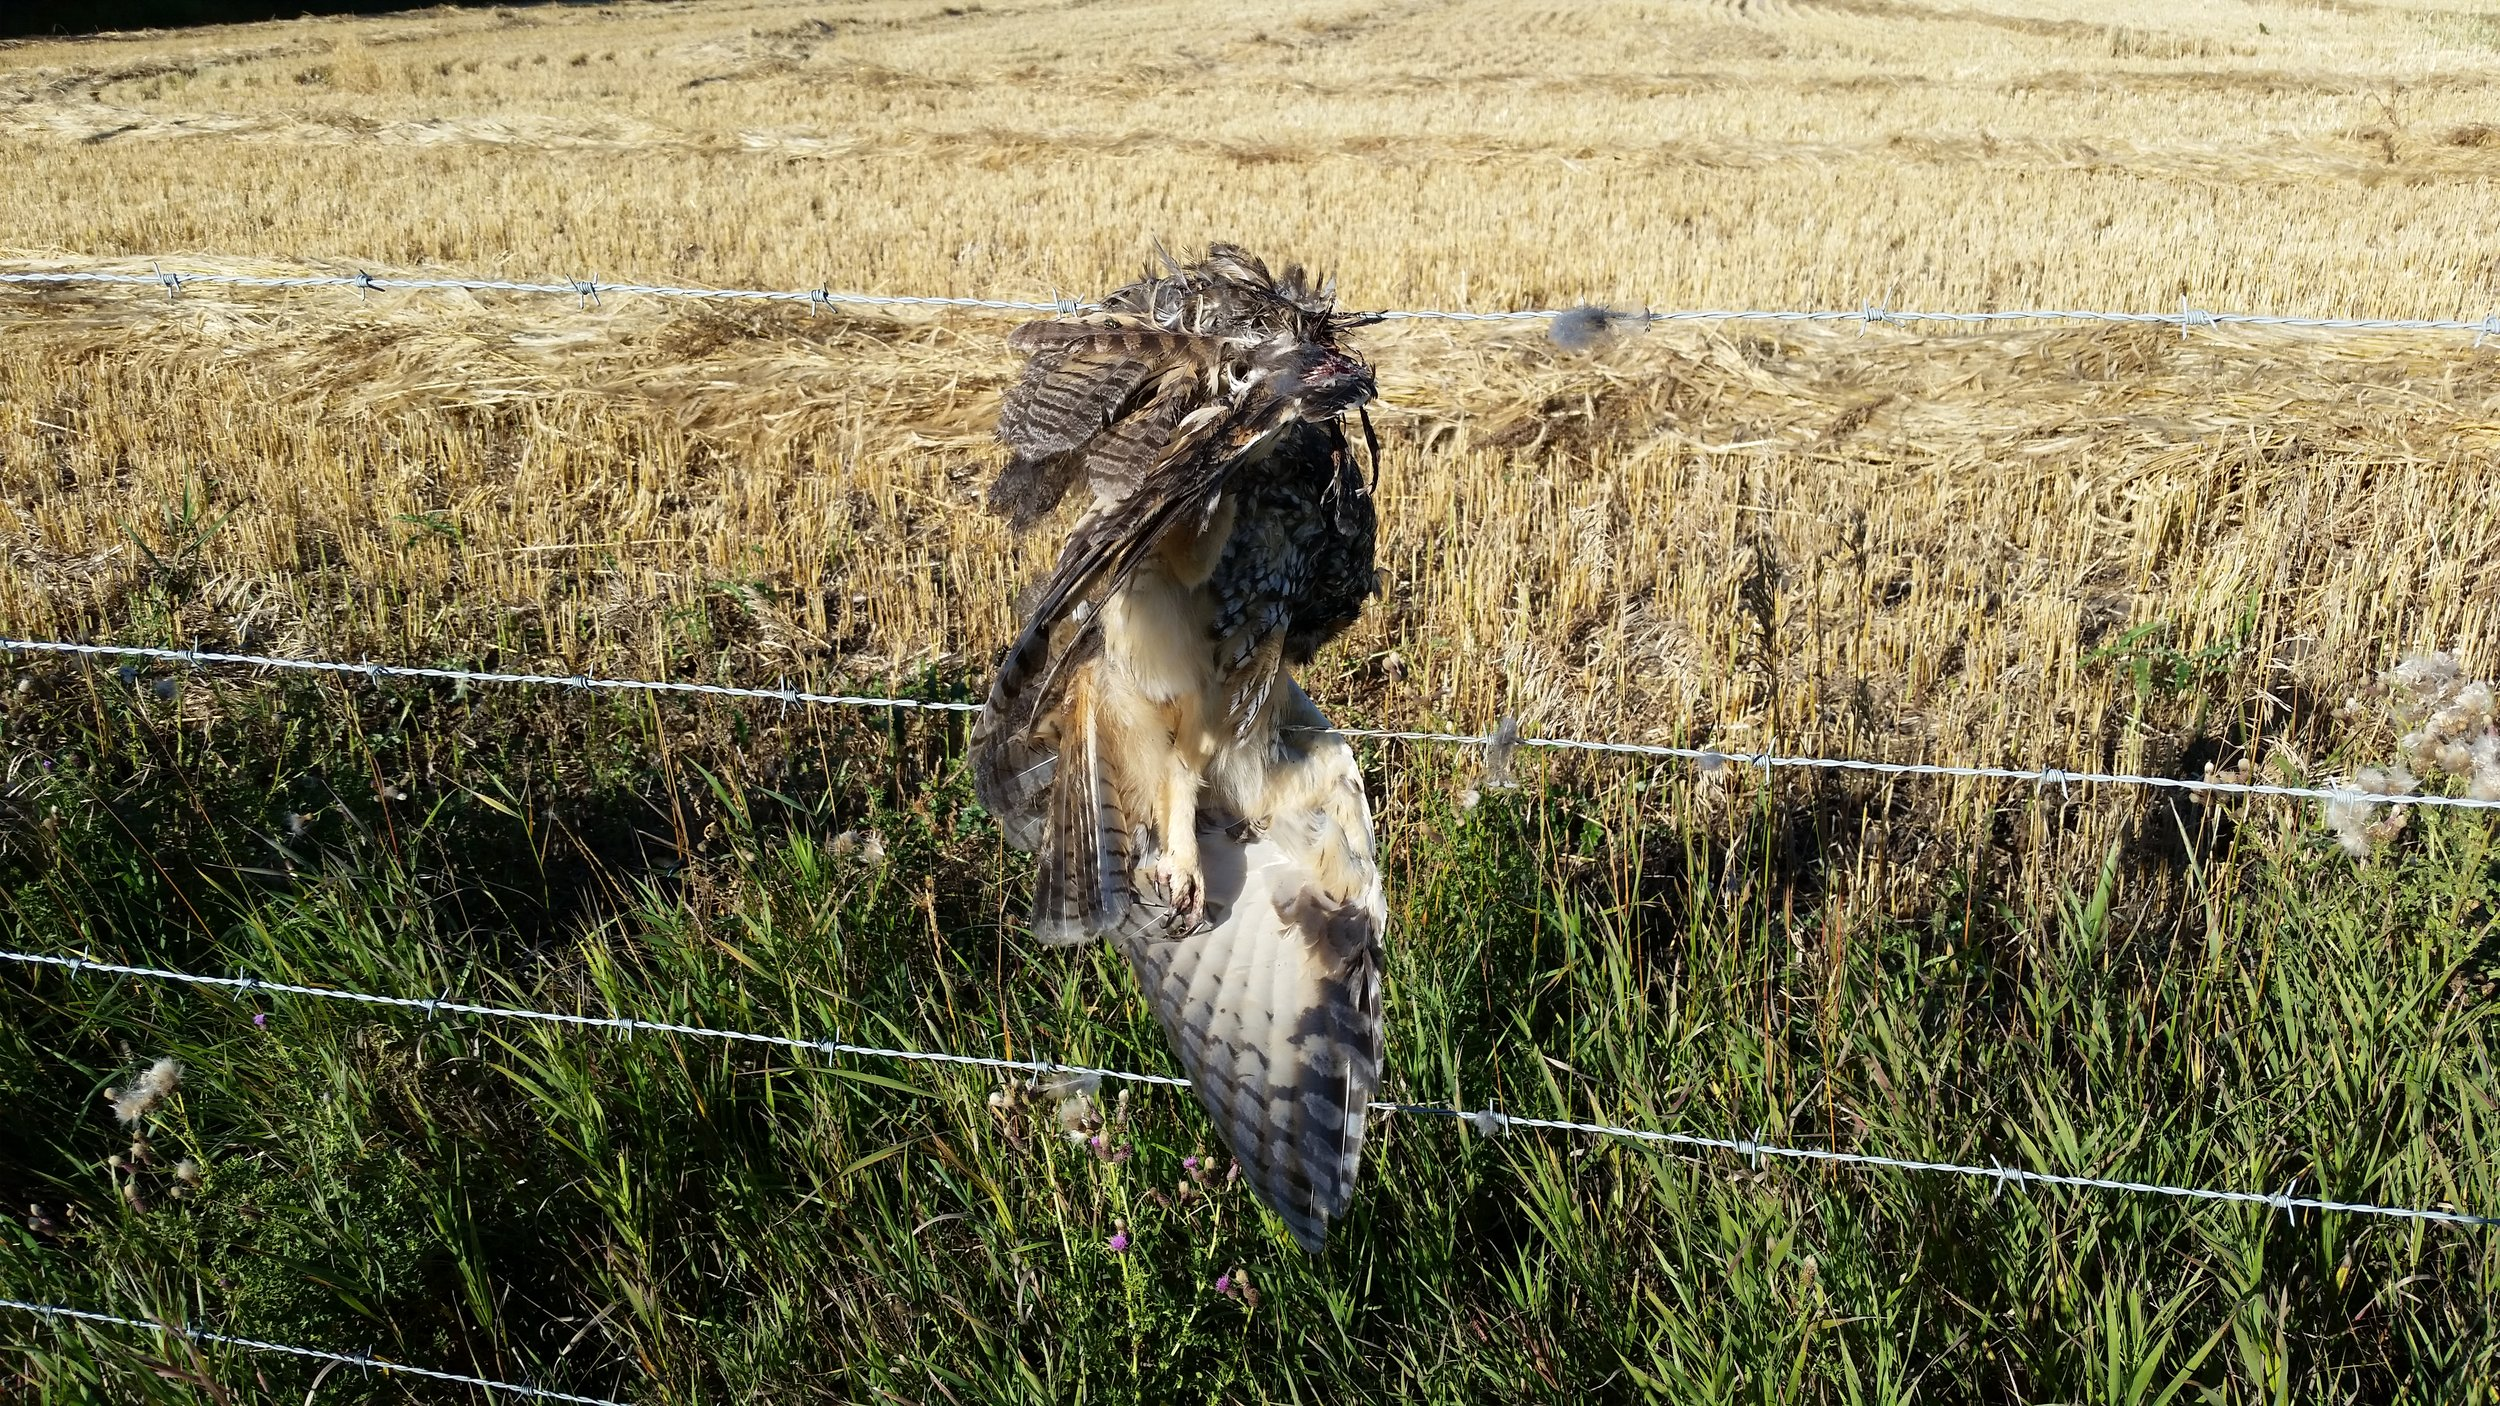 Low flying birds like raptors, waterfowl, and grouse are vulnerable as well.